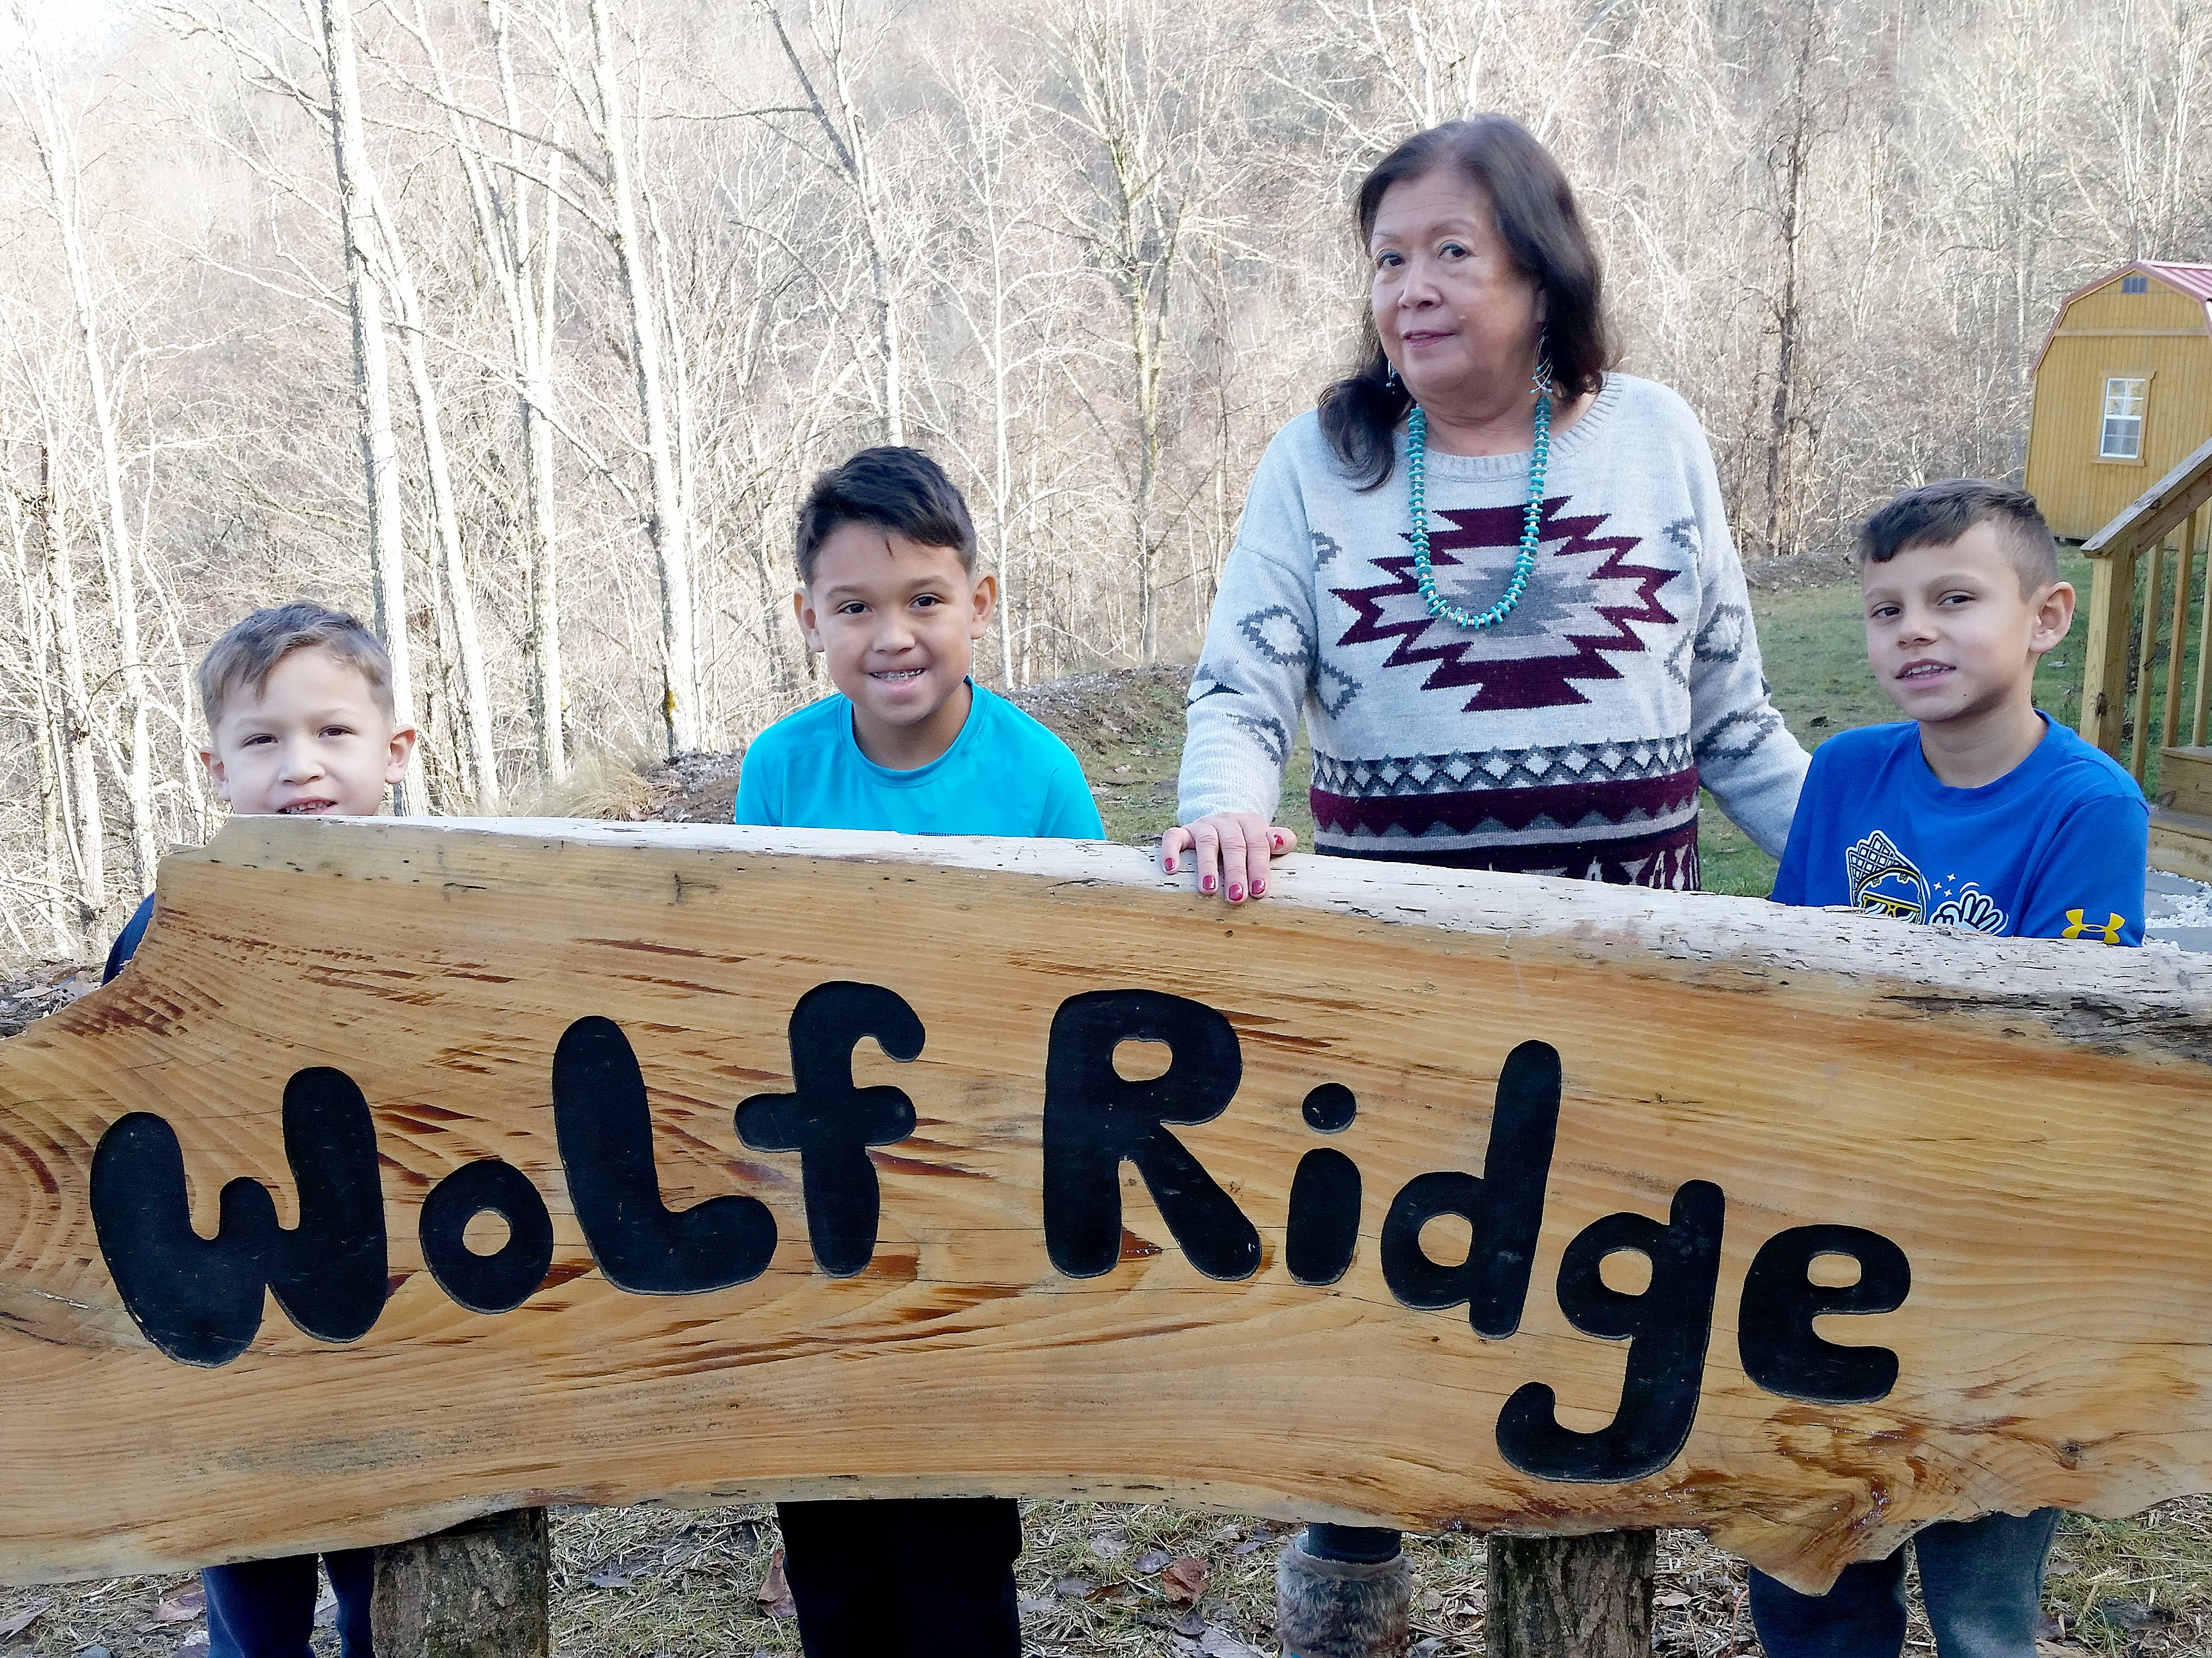 Vangie Stephens stands with her grandsons Carter, or in Cherokee Wayasdi and Kaden, or Kaniliya, Stephens and their friend Jeron Martens at her home on the Qualla Boundary.